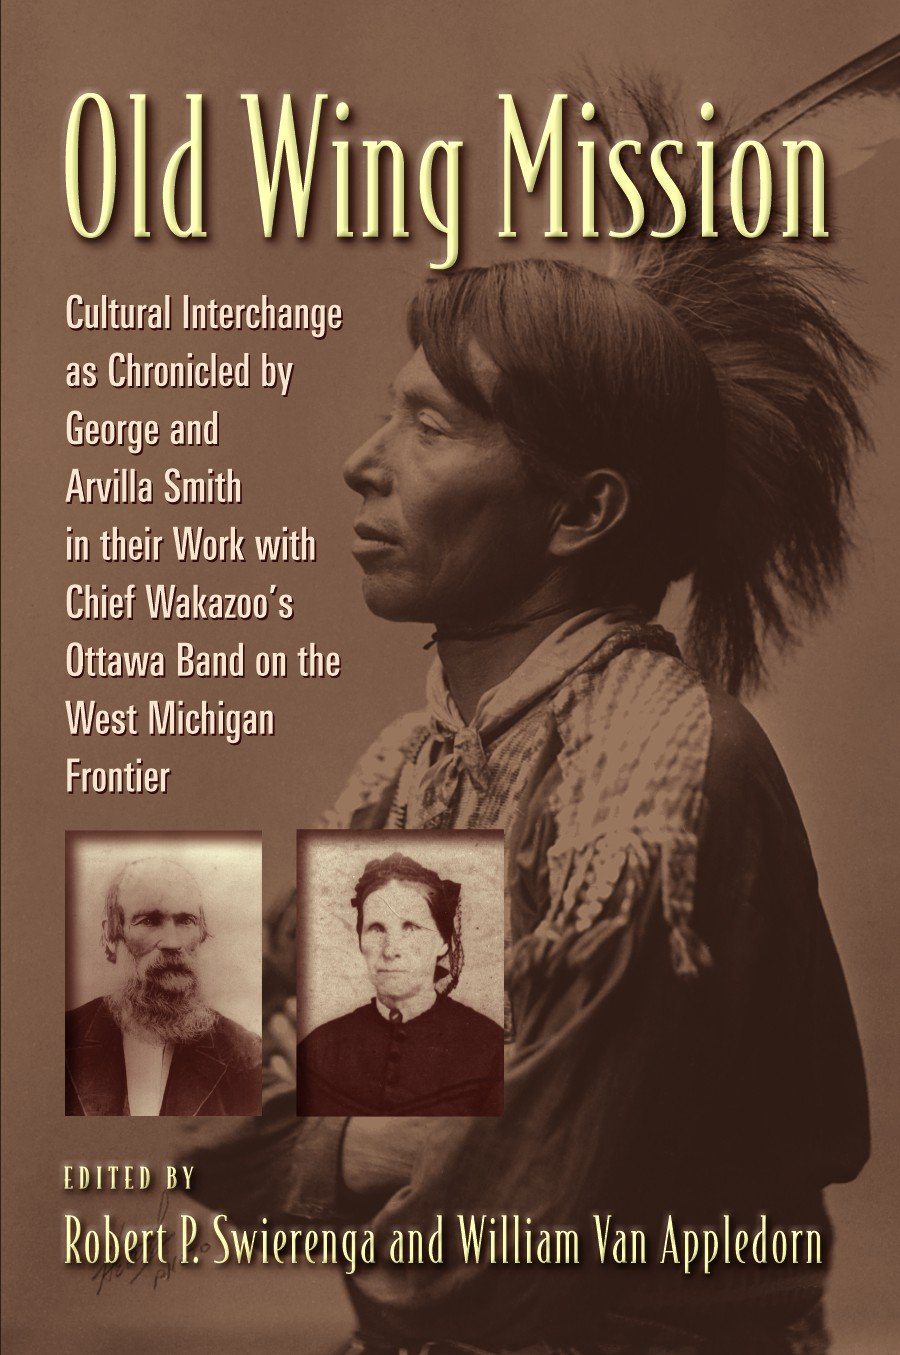 Old Wing Mission: Cultural Interchange as Chronicled by George and Arvilla  Smith in their Work with Chief Wakazoo's Ottawa Band on the West Michigan  ... of the Reformed Church in America (HSRCA)):